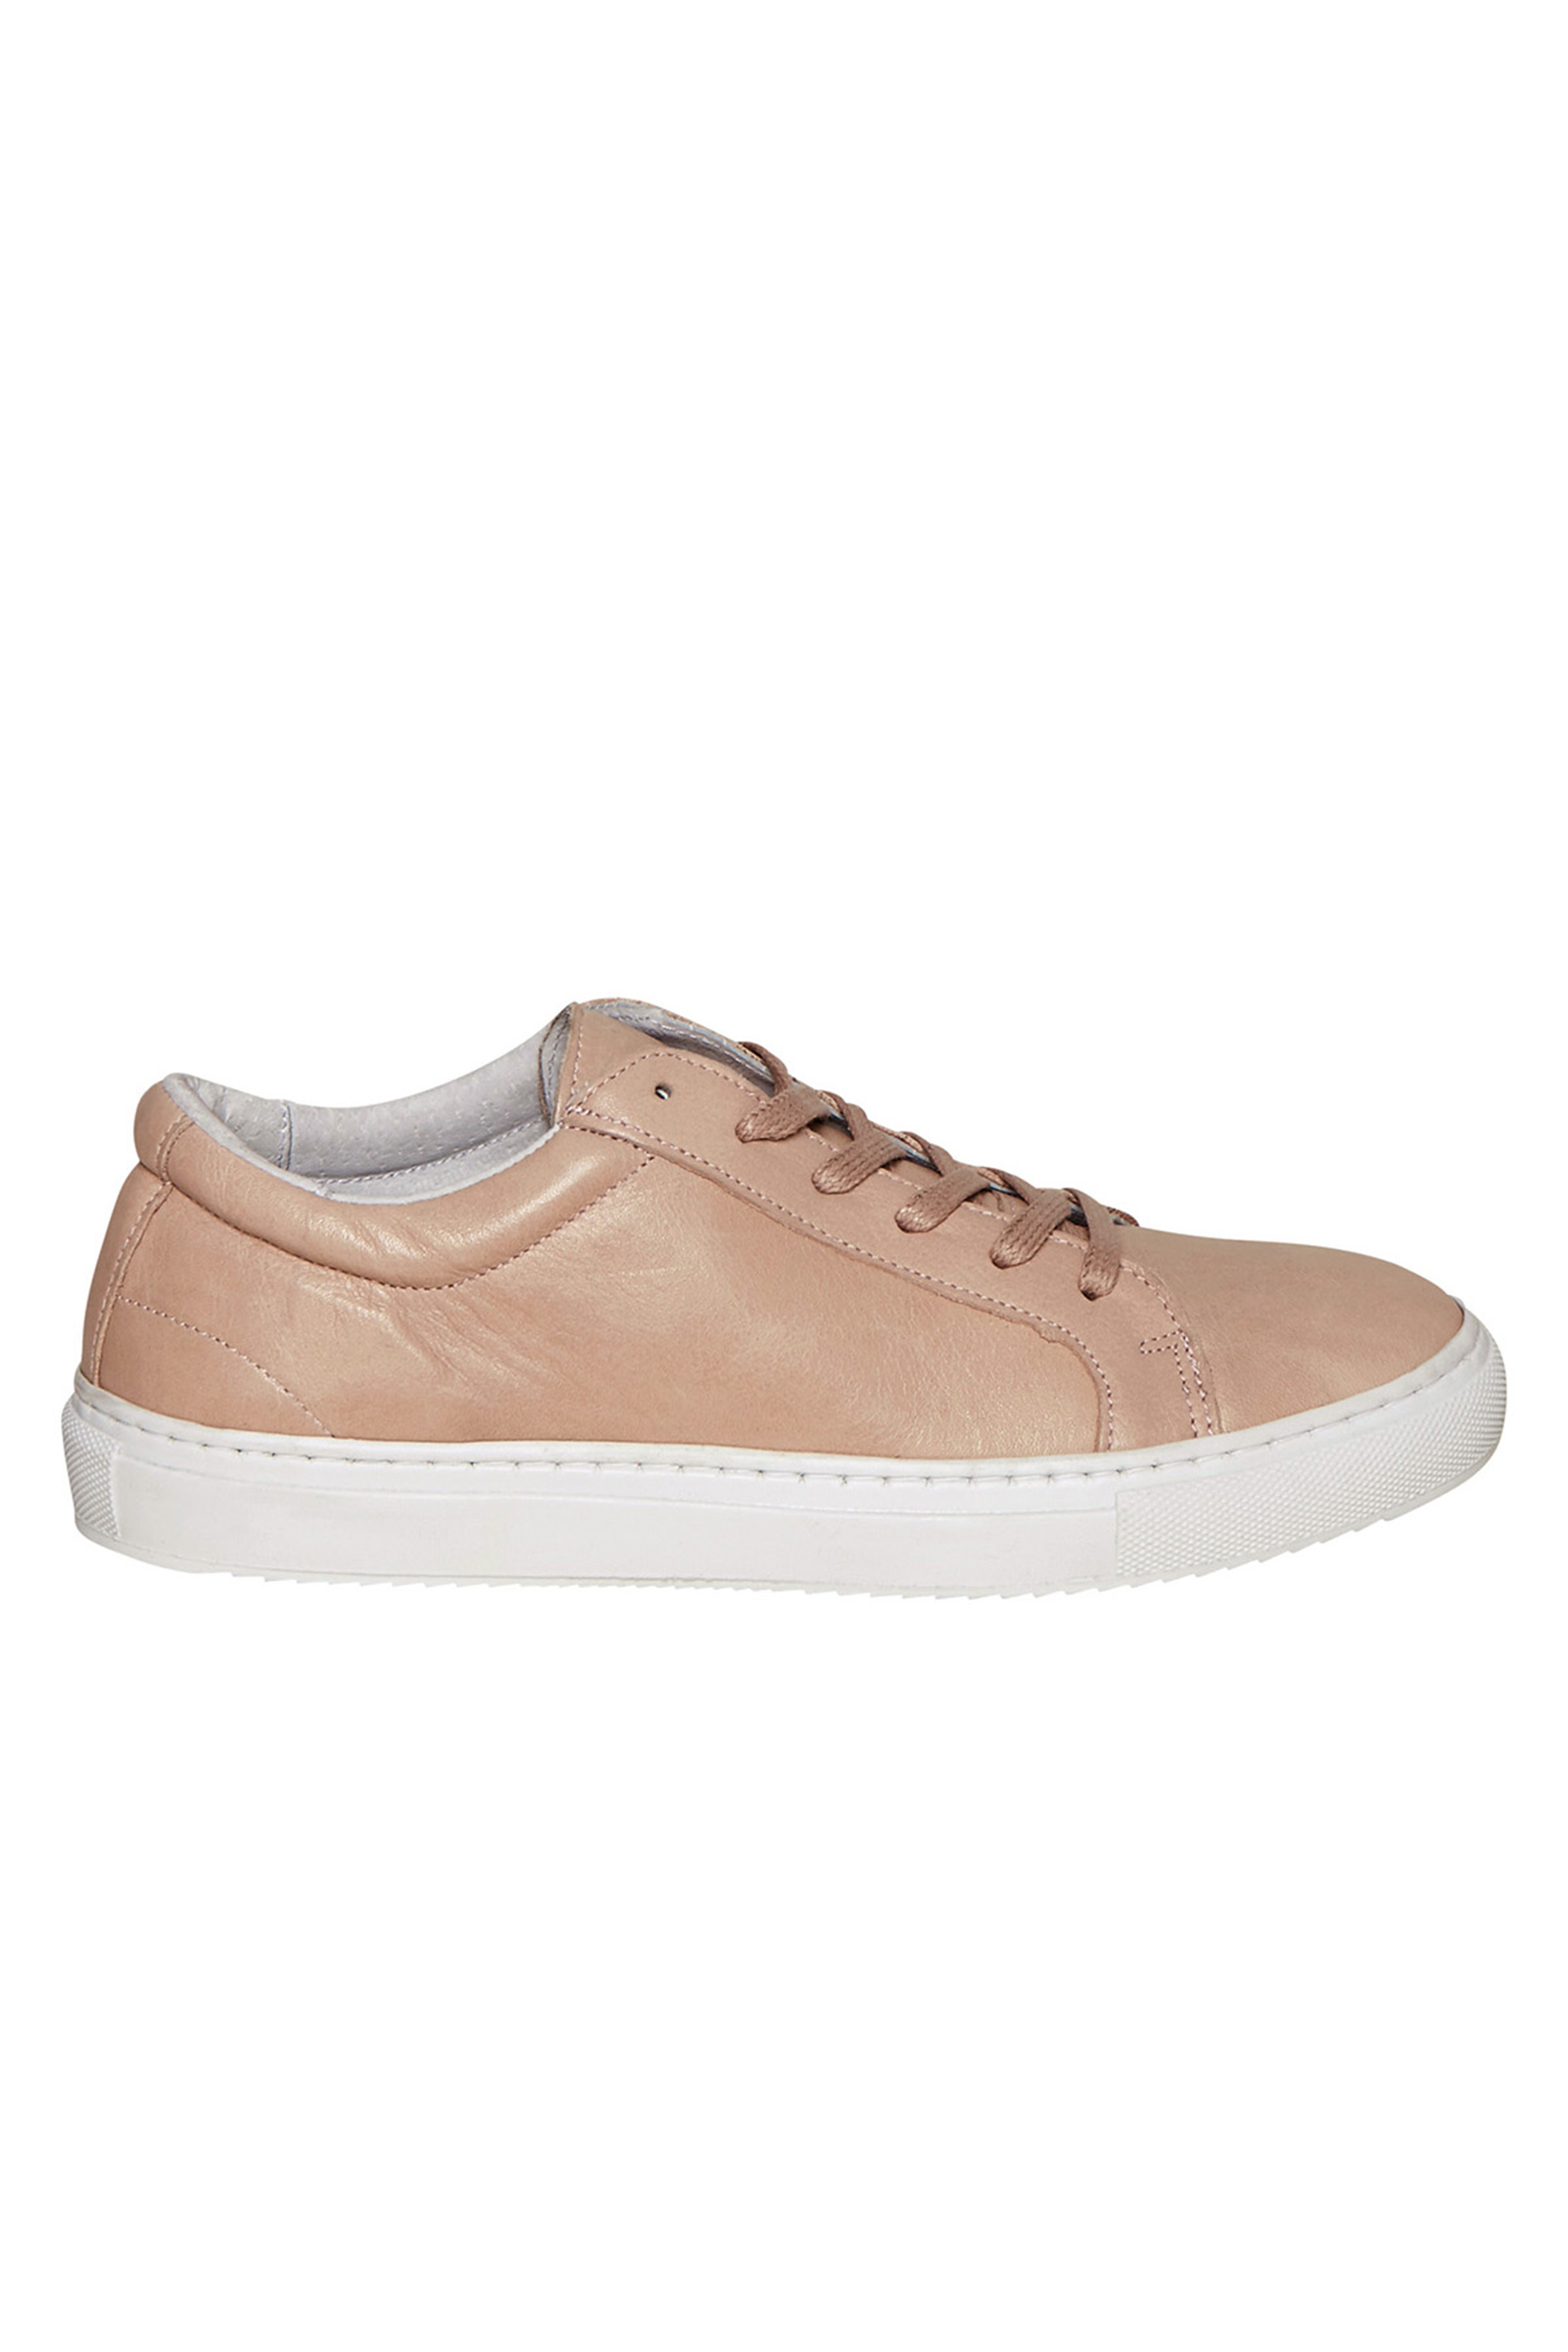 Image of   Ichi - accessories Dame Super cool sneakers - Nougat